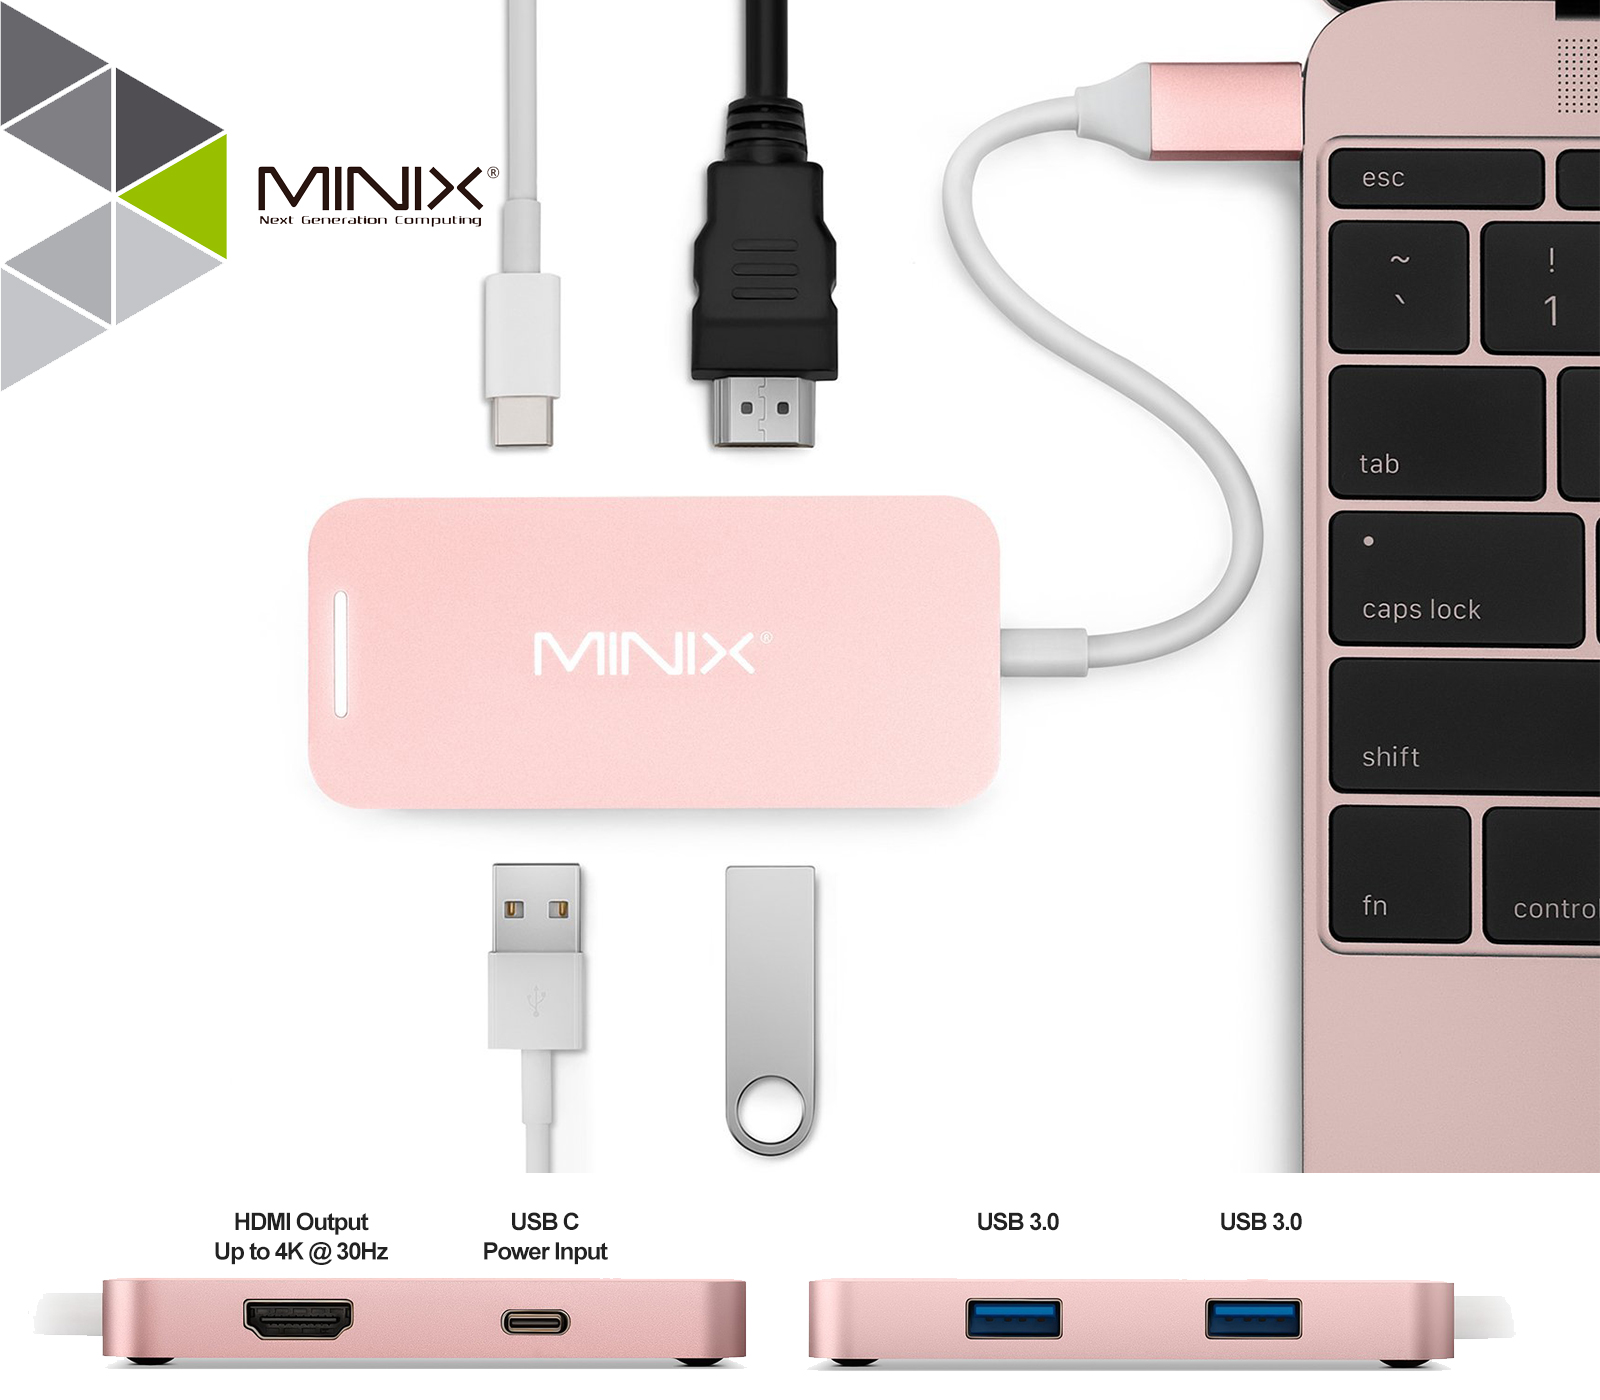 New Type C USB 3.1 to USB-C 4K HDMI USB 3.0 Adapter 4 in 1 Hub For Apple Macbook